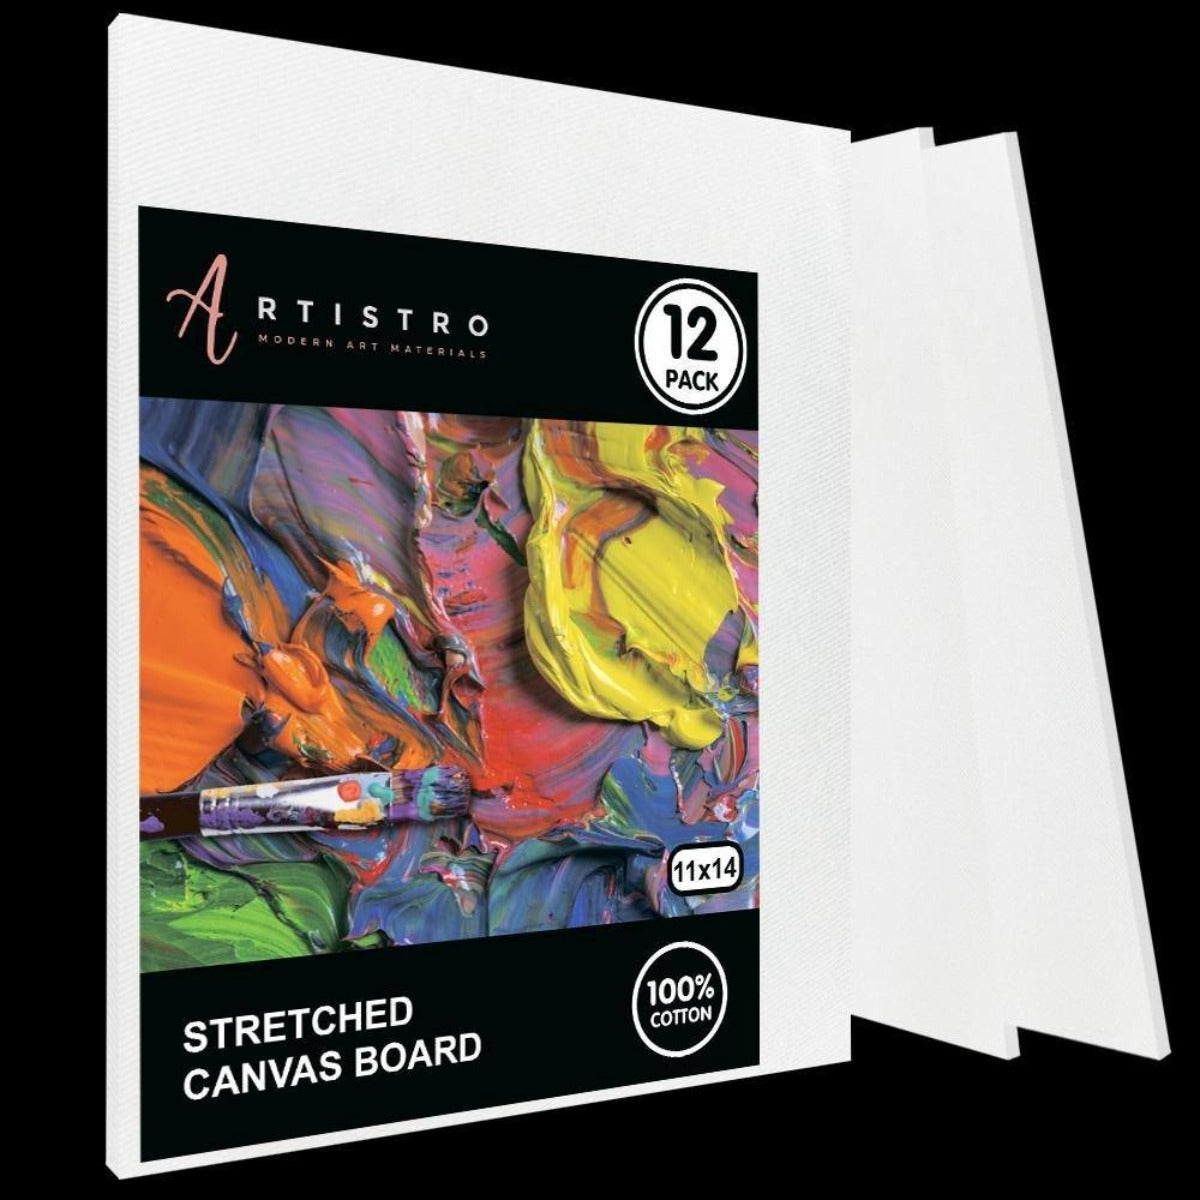 "Stretched Canvas, White, MDF board, 11x14"" - Pack of 12 - Artistro"